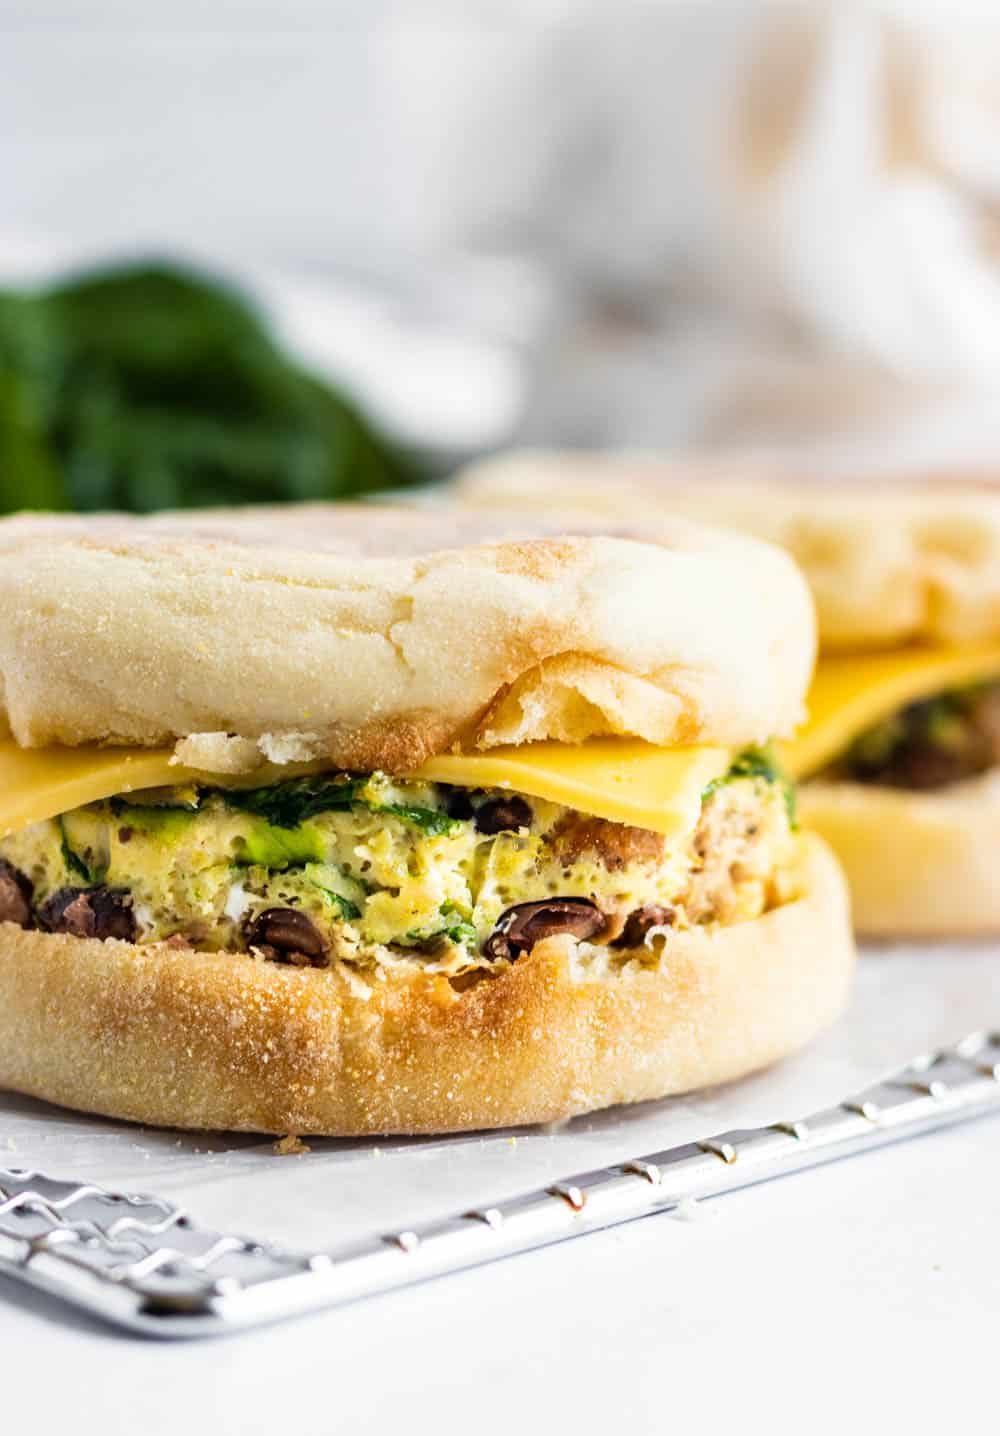 Breakfast sandwich with egg, cheese and black bean on rack.